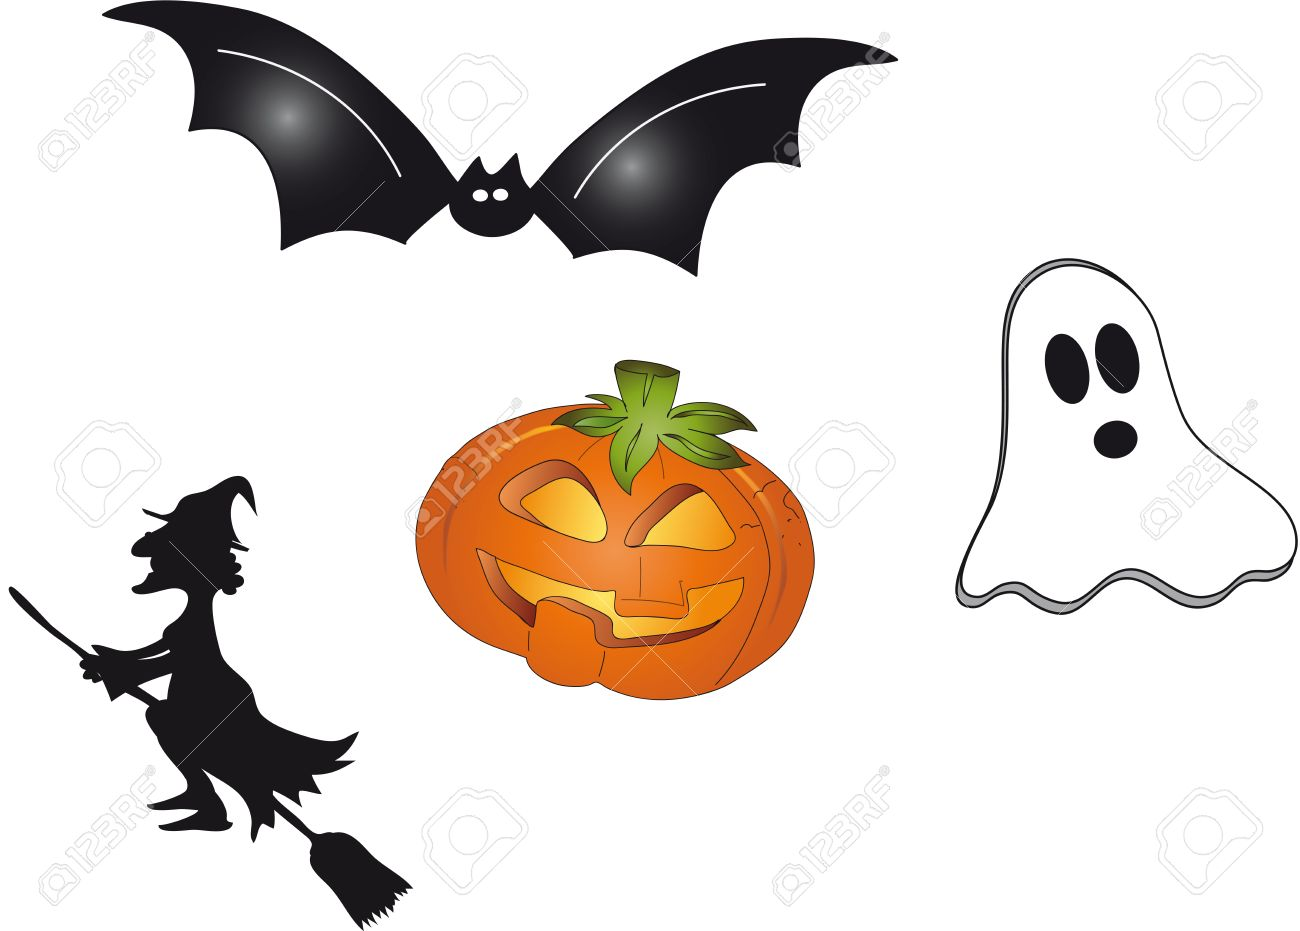 Halloween symbols stock photo picture and royalty free image halloween symbols biocorpaavc Choice Image